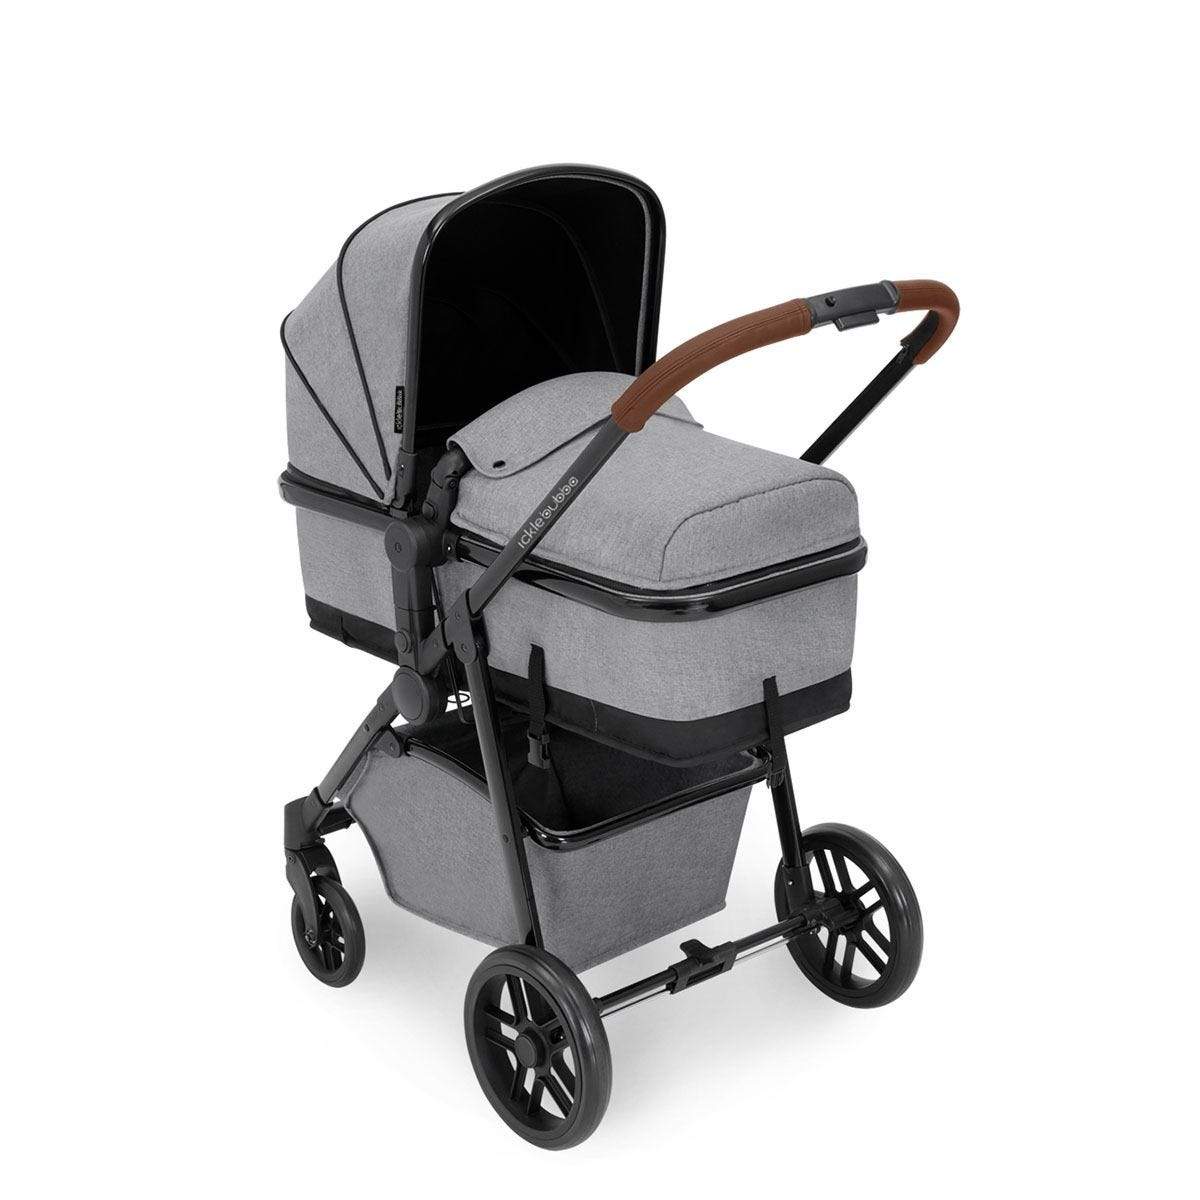 Ickle Bubba Moon 3 in 1 Travel System - Space Grey on Black with Tan Handles